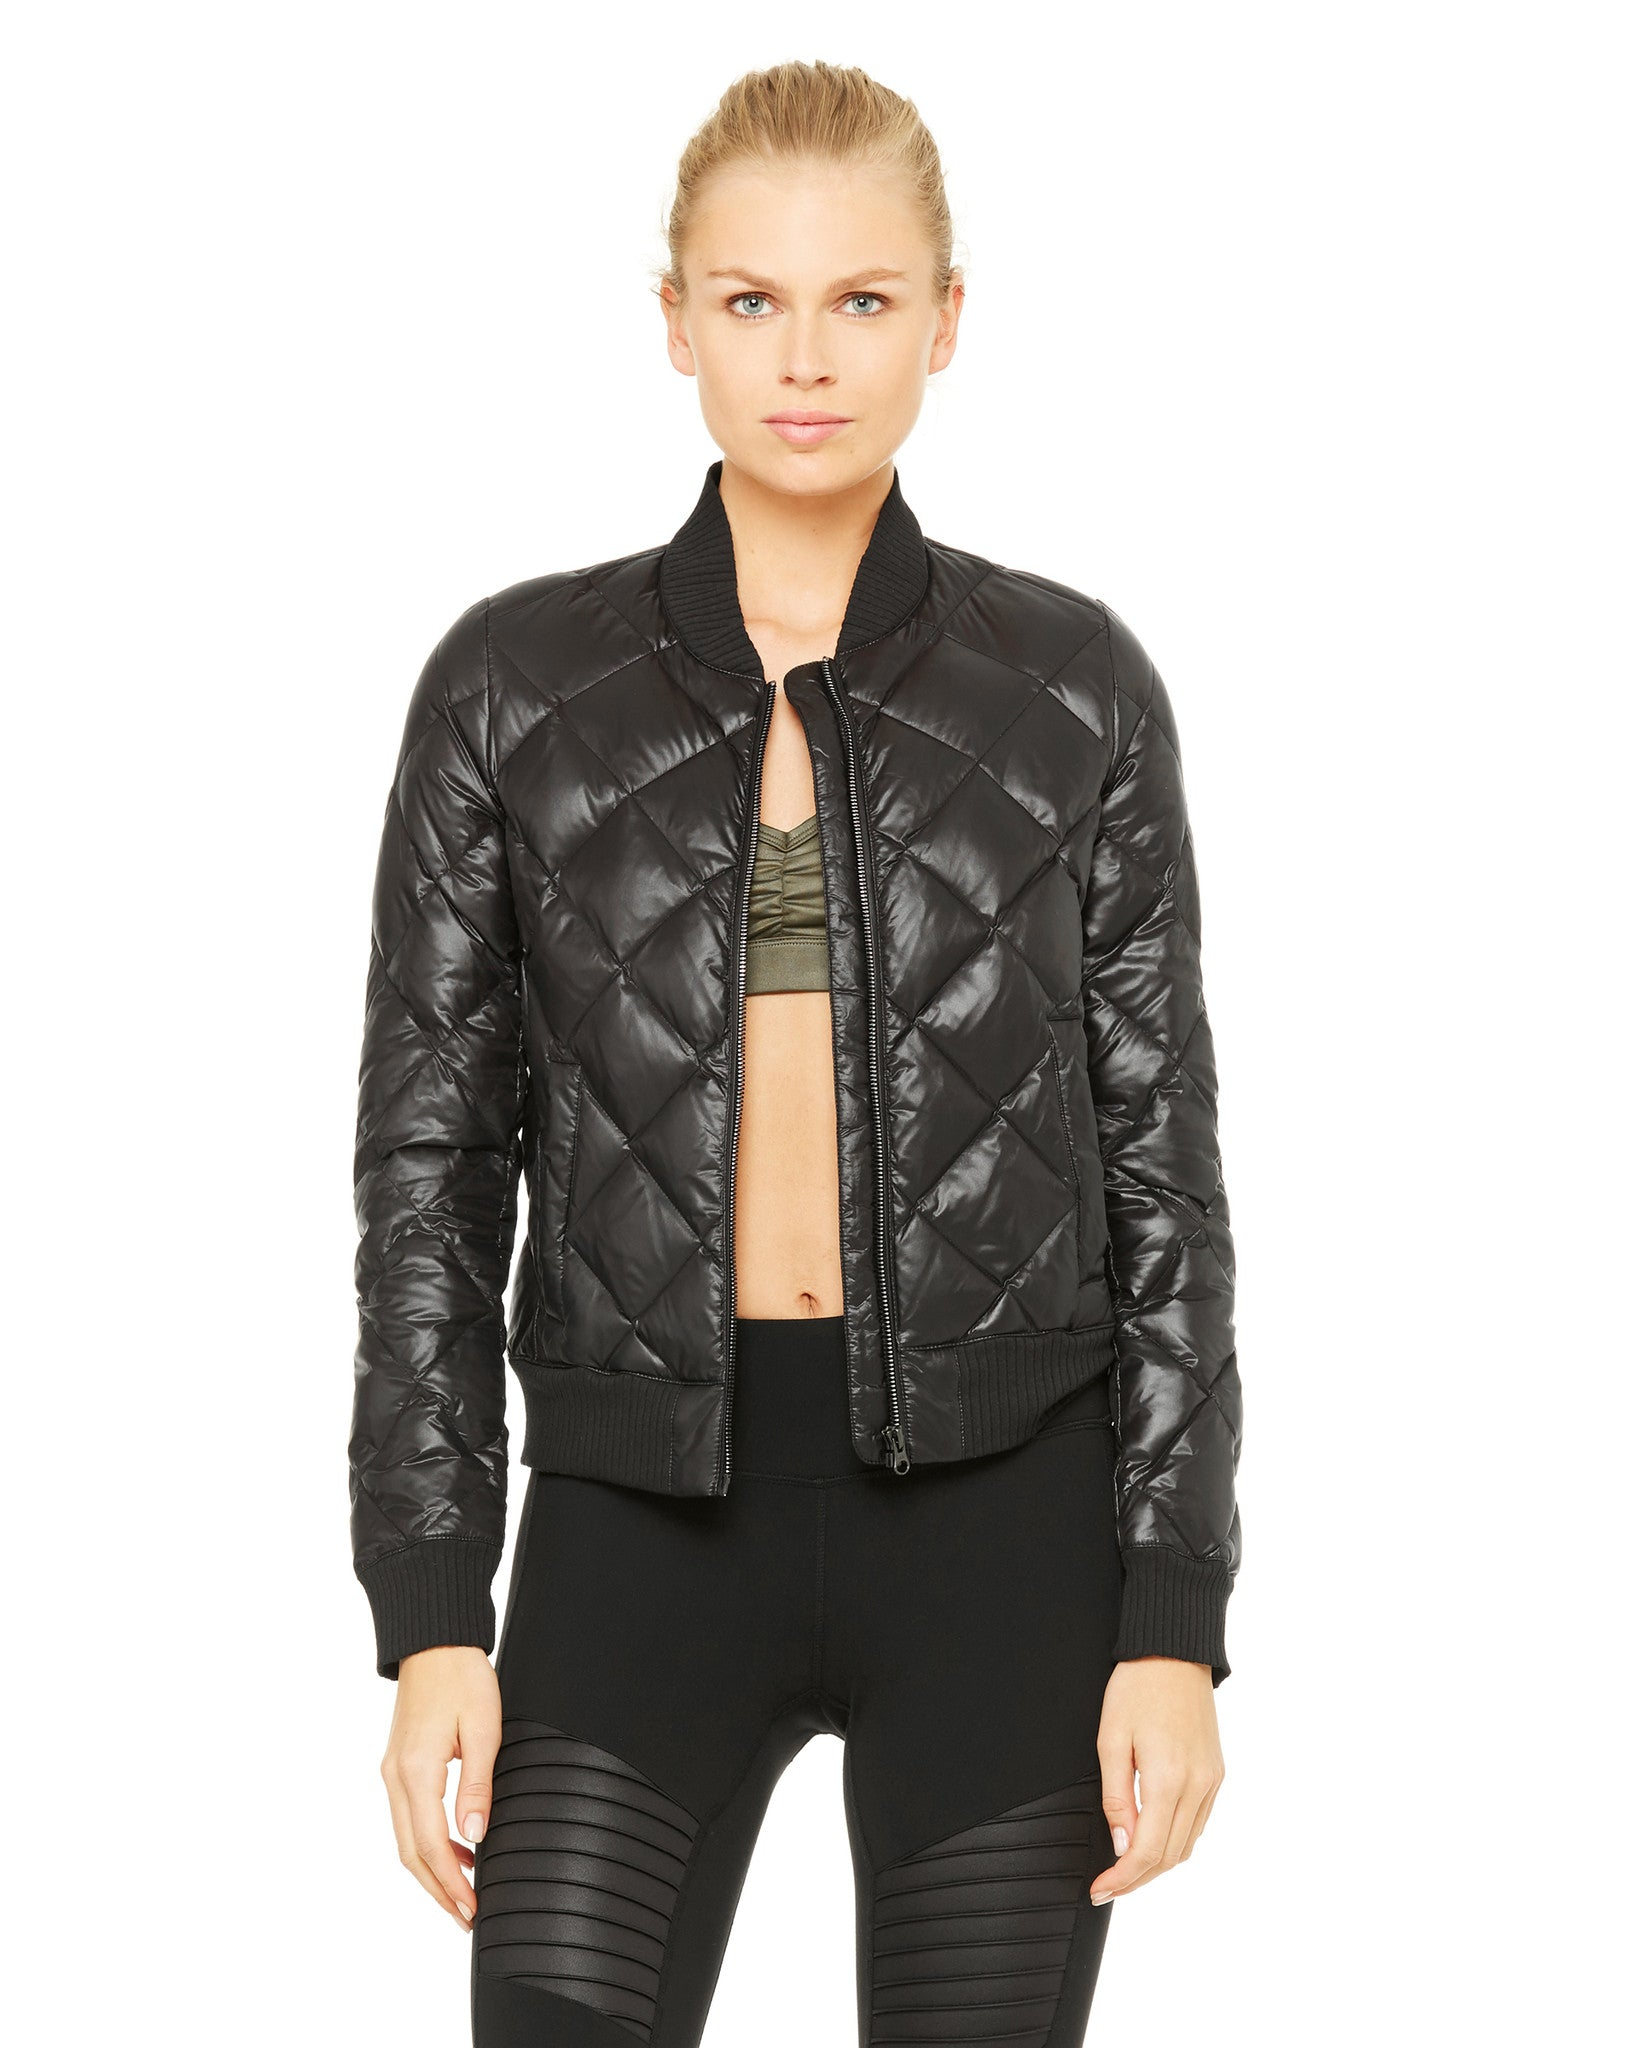 Idol Bomber Jacket in Black